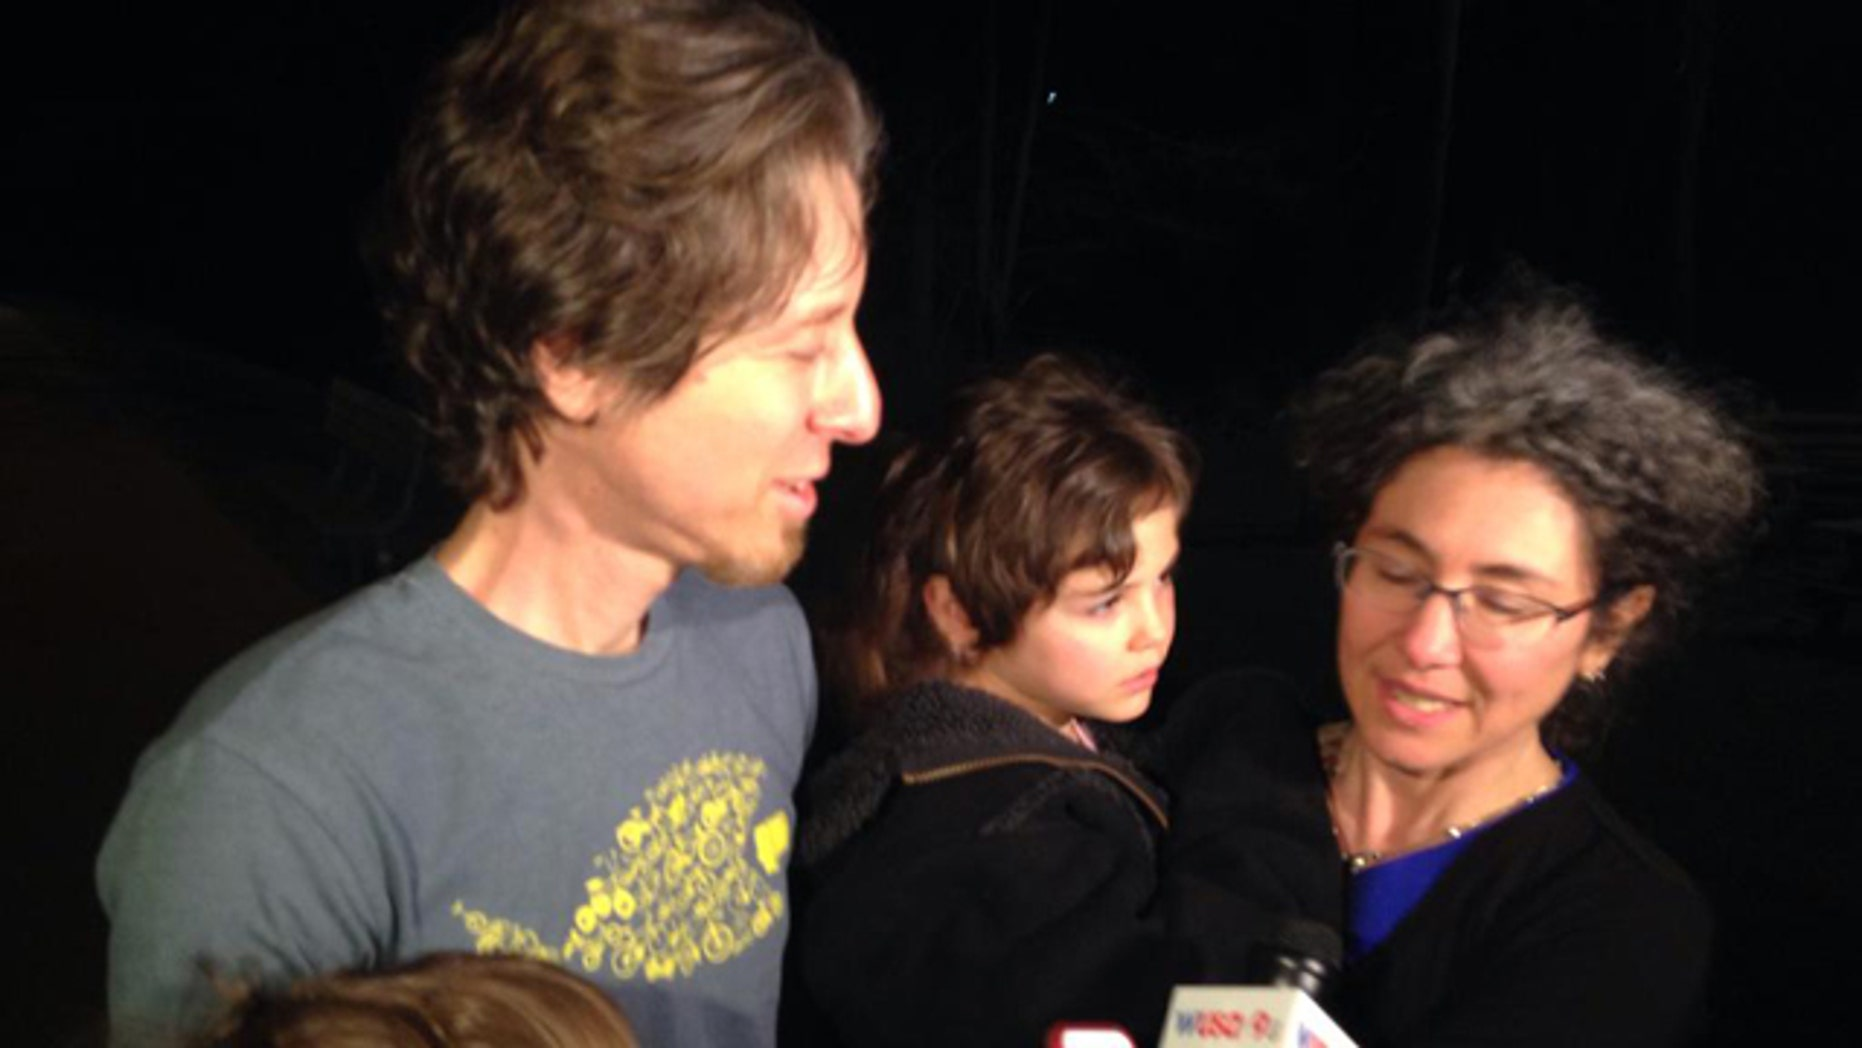 April 12, 2015: Danielle and Alexander Meitiv speak to reports after being reunited with their children at the Montgomery County (Md.) Child Protective Services office in Rockville, Md. (Marrina Marraco/MyFoxDC.com)